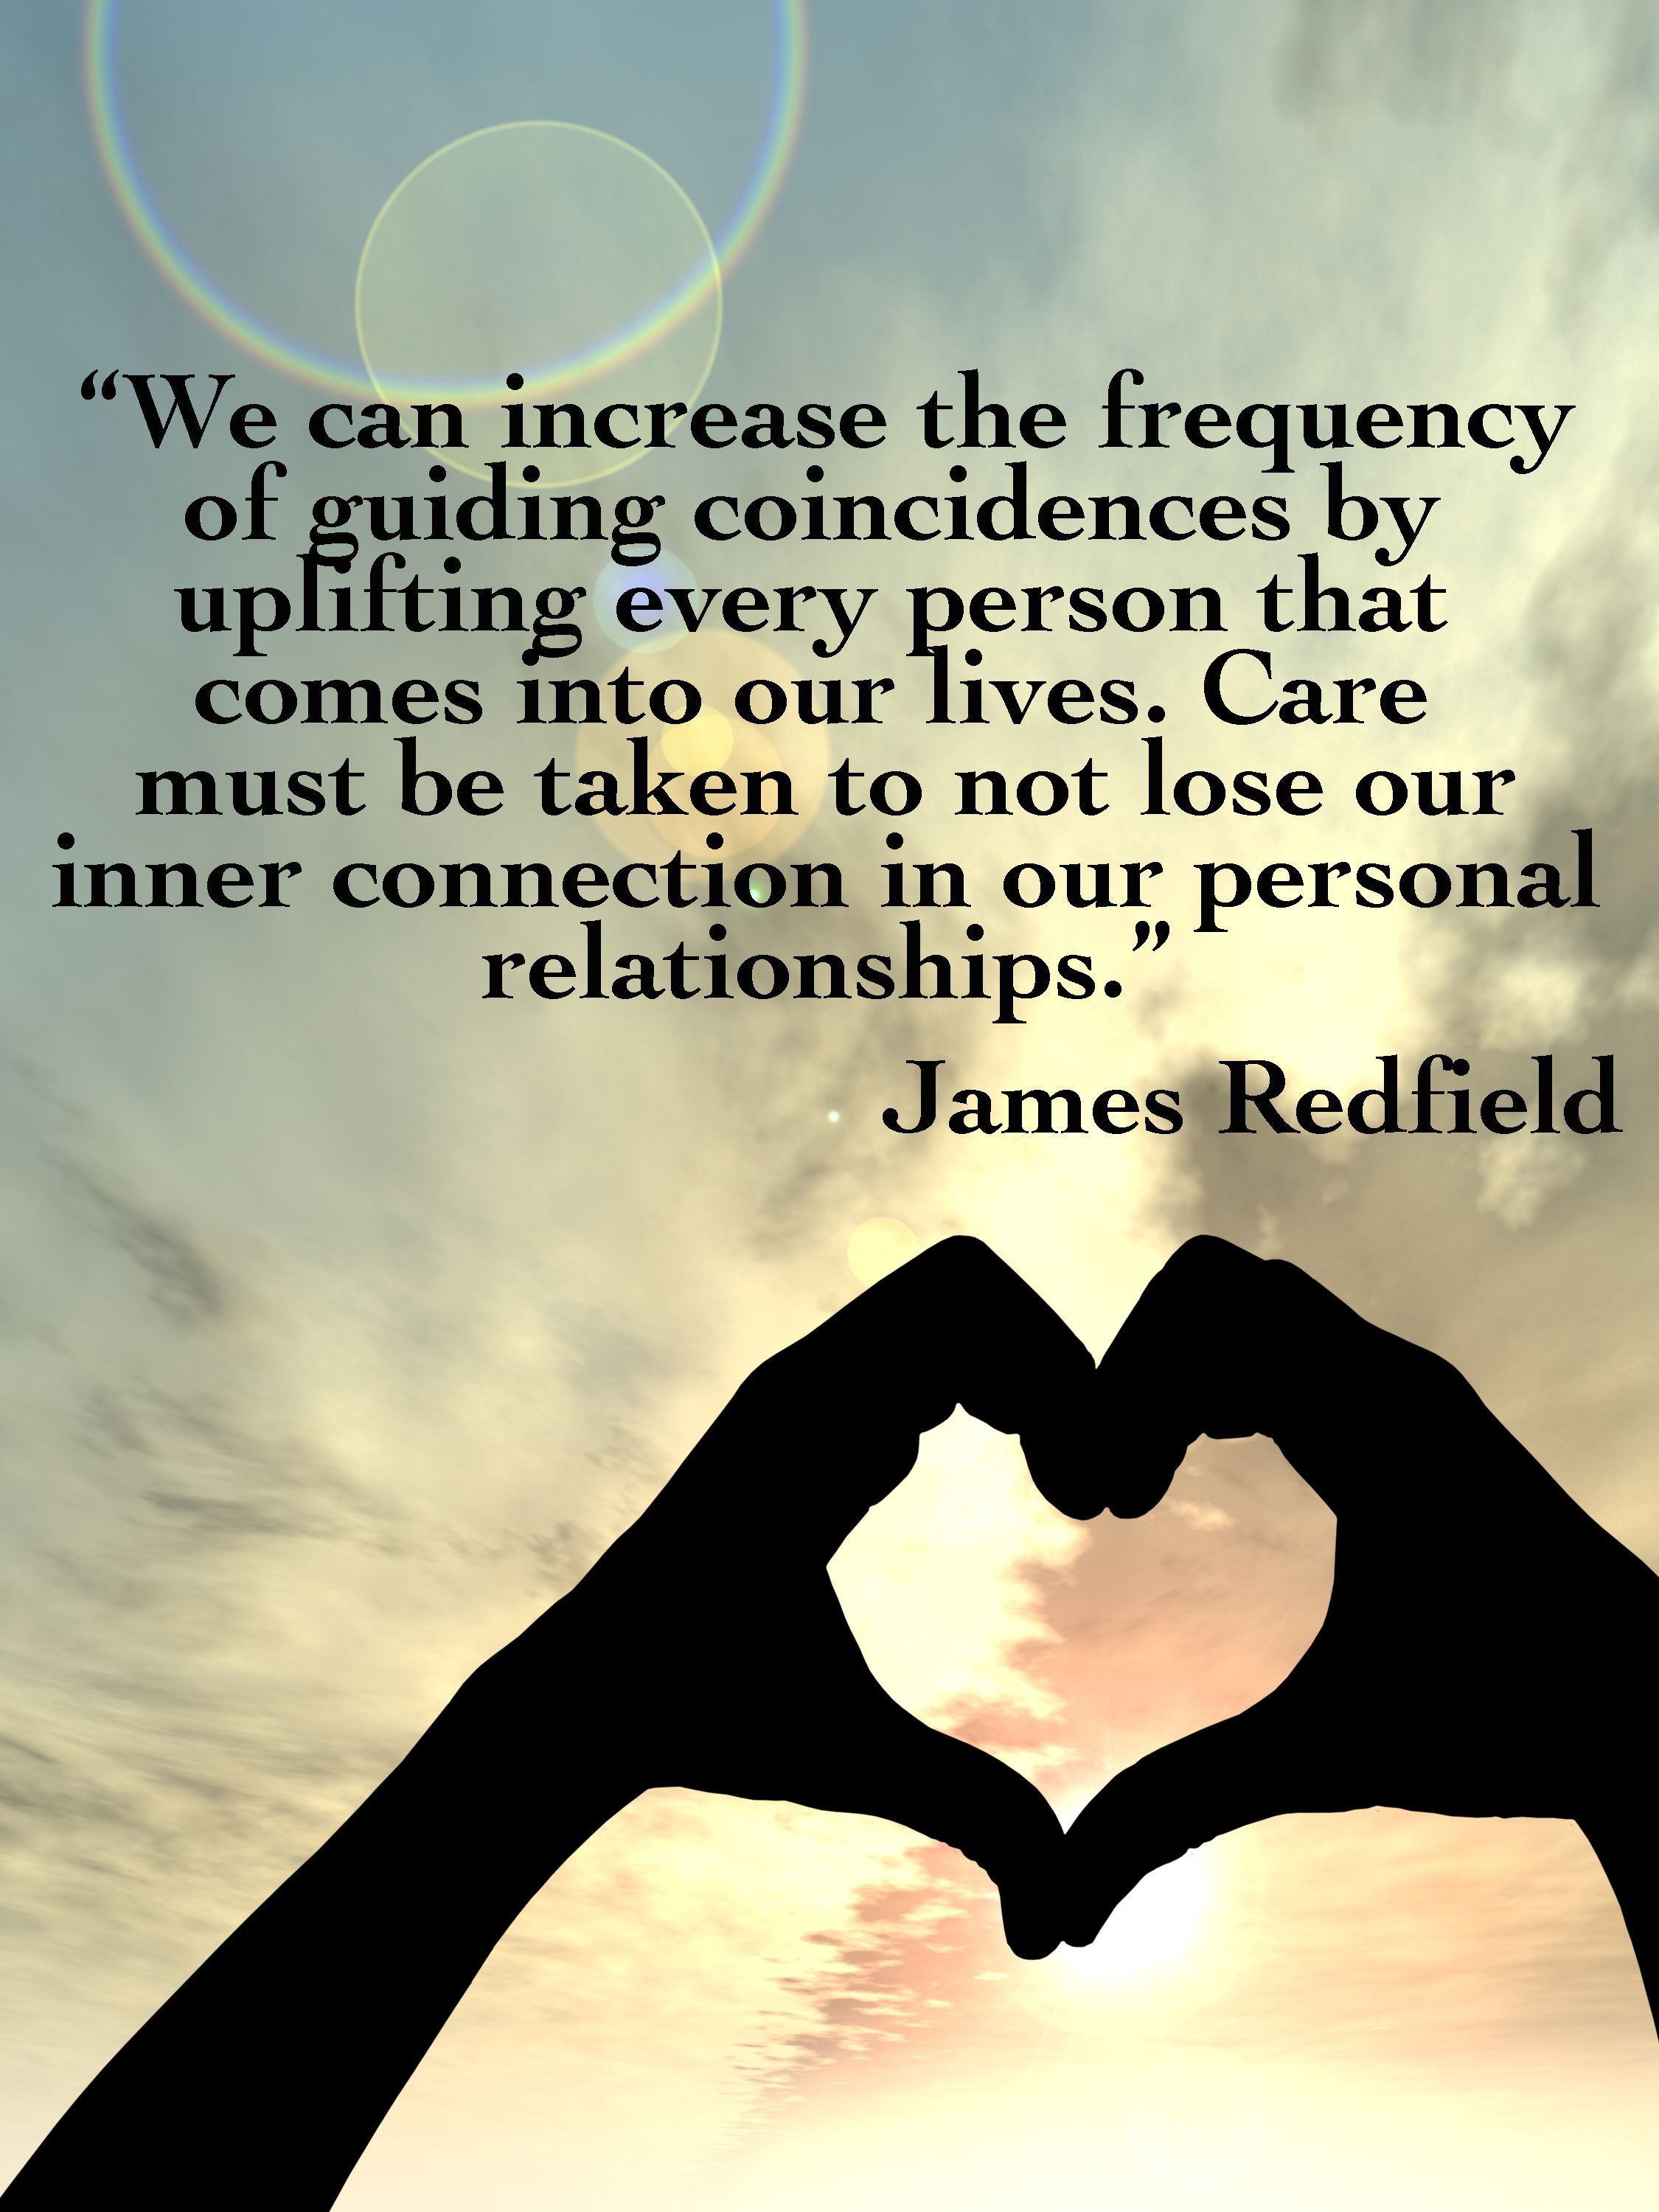 Spiritual Quotes On Love Impressive Inspirational And Spiritual Quotesjames Redfield  Celestine